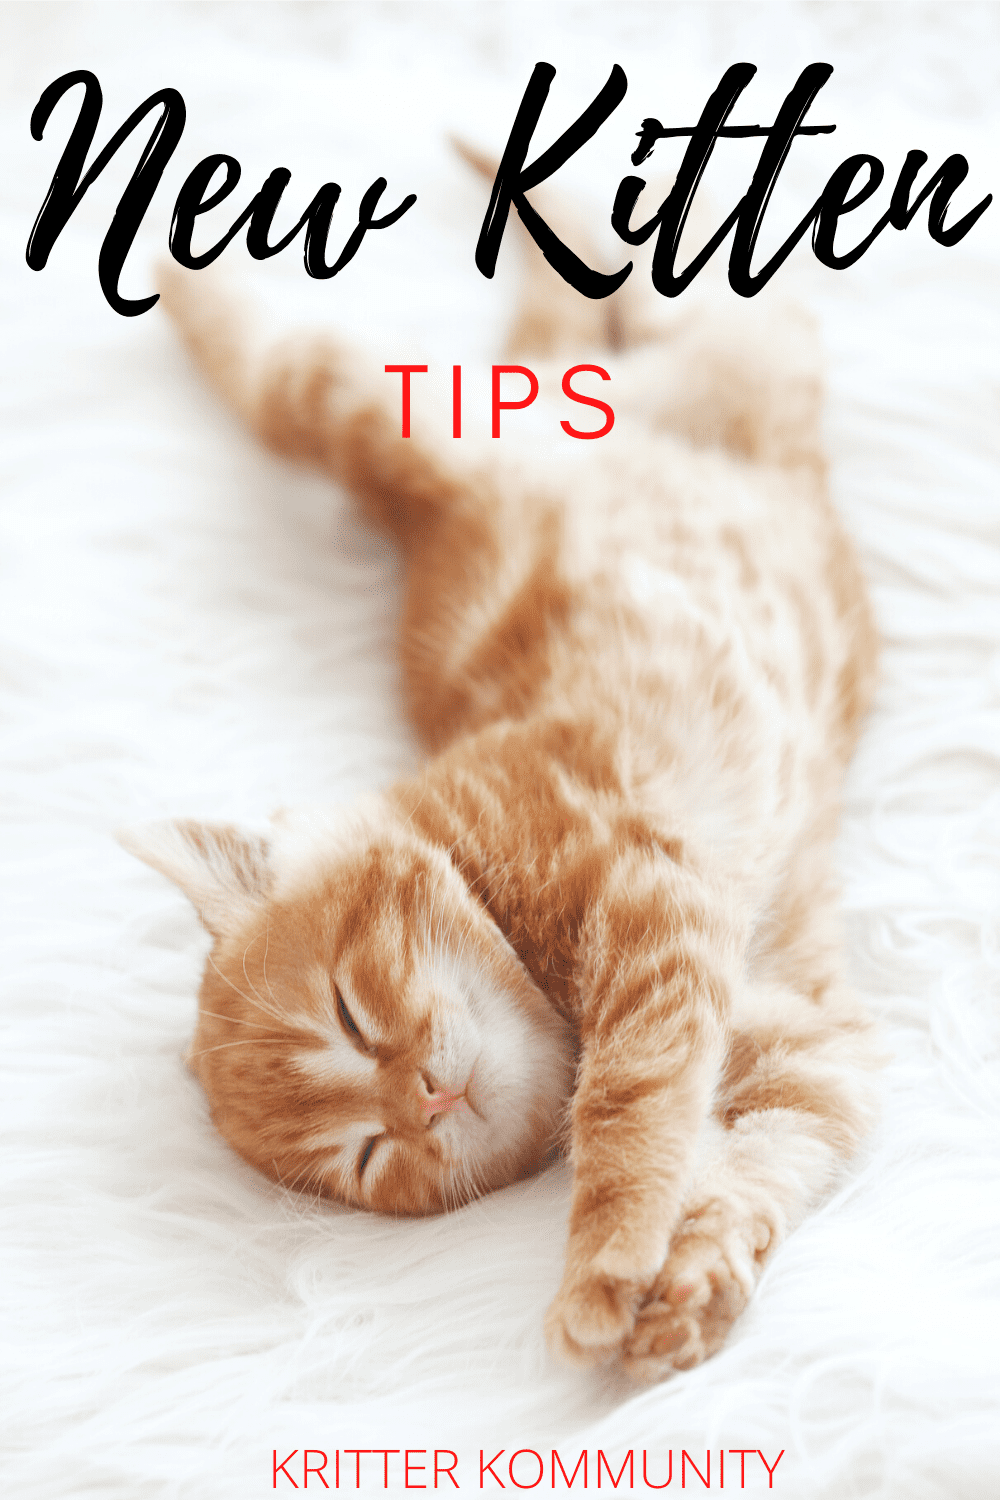 Important Ways To Prepare Your Home For A New Kitten Kritter Kommunity In 2020 Sleeping Kitten Kitten Care Kitten